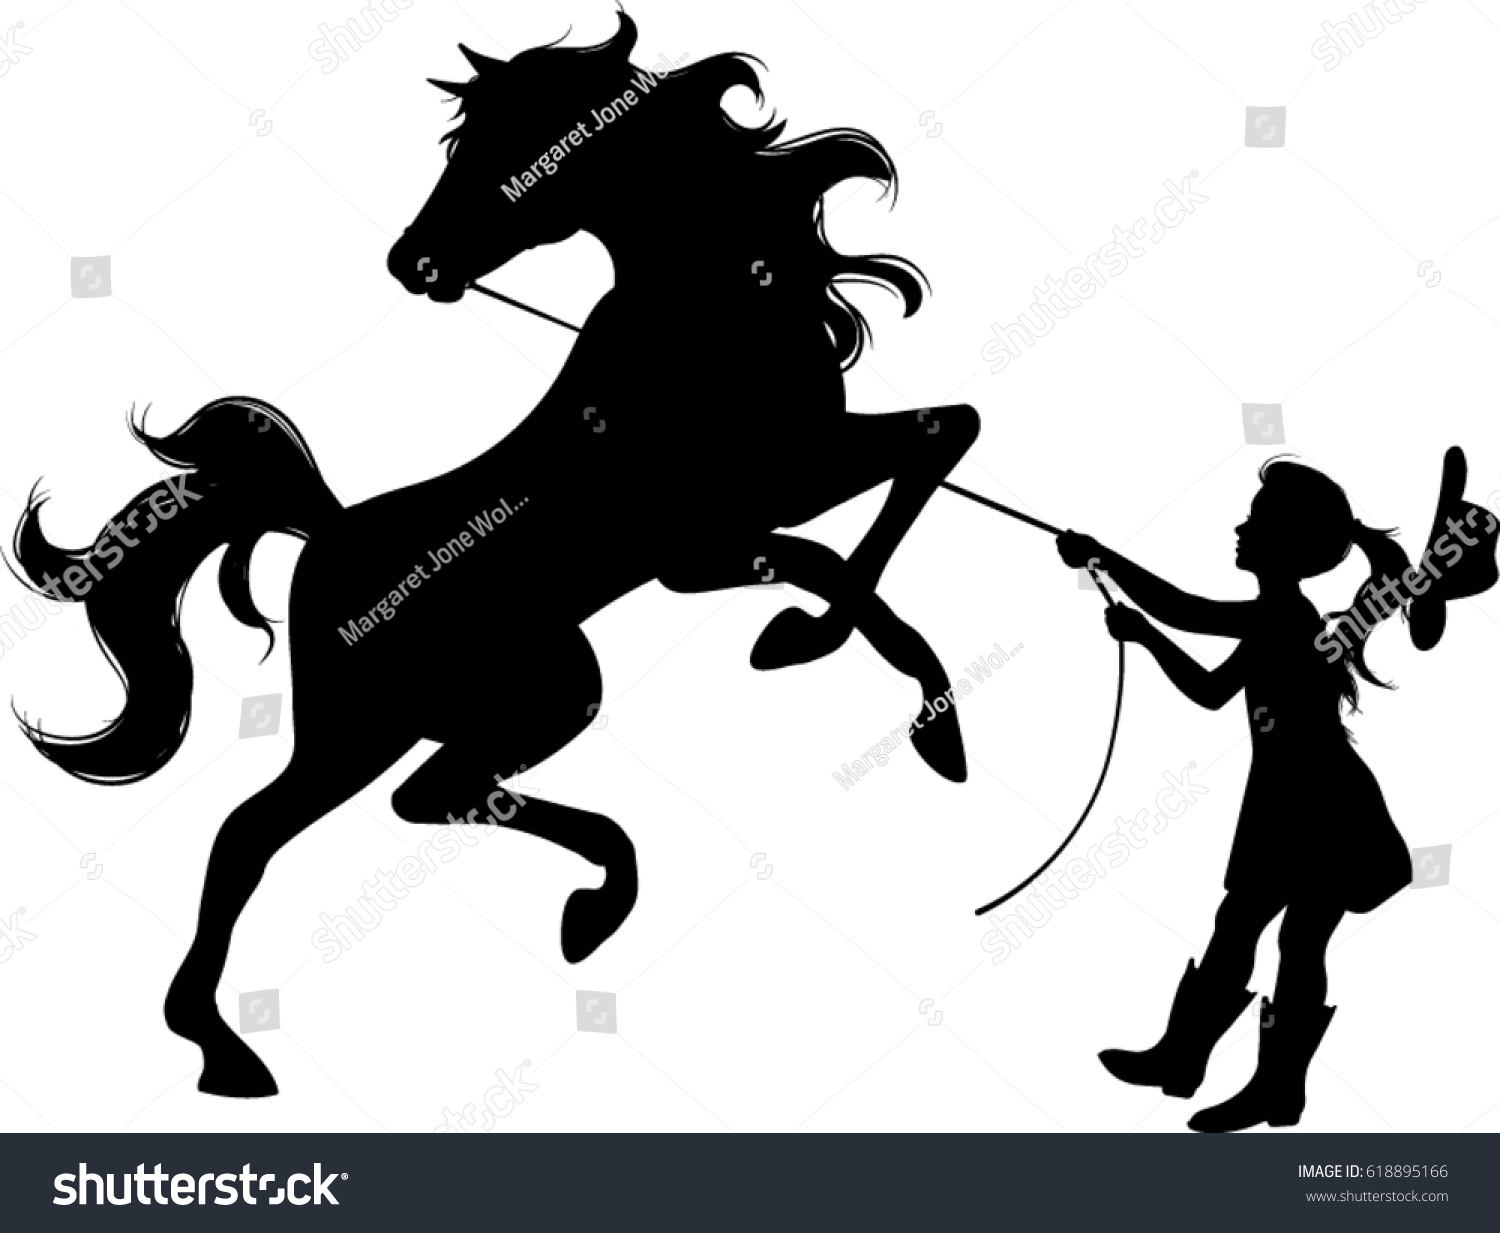 Cowgirl Wild Horse Silhouette Vector Illustration Stock Vector Royalty Free 618895166